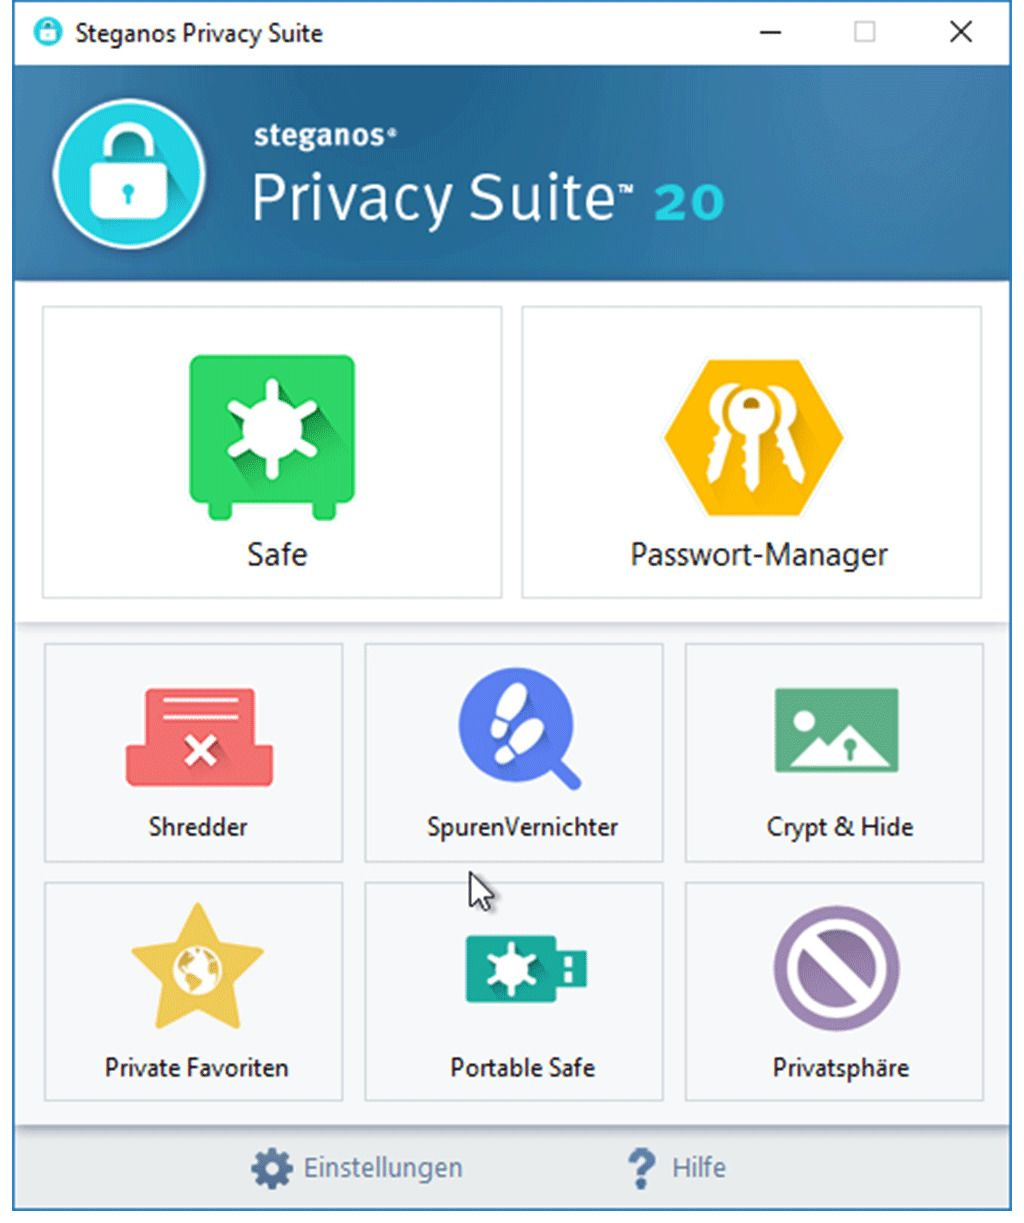 Steganos - Steganos Privacy Suite 20